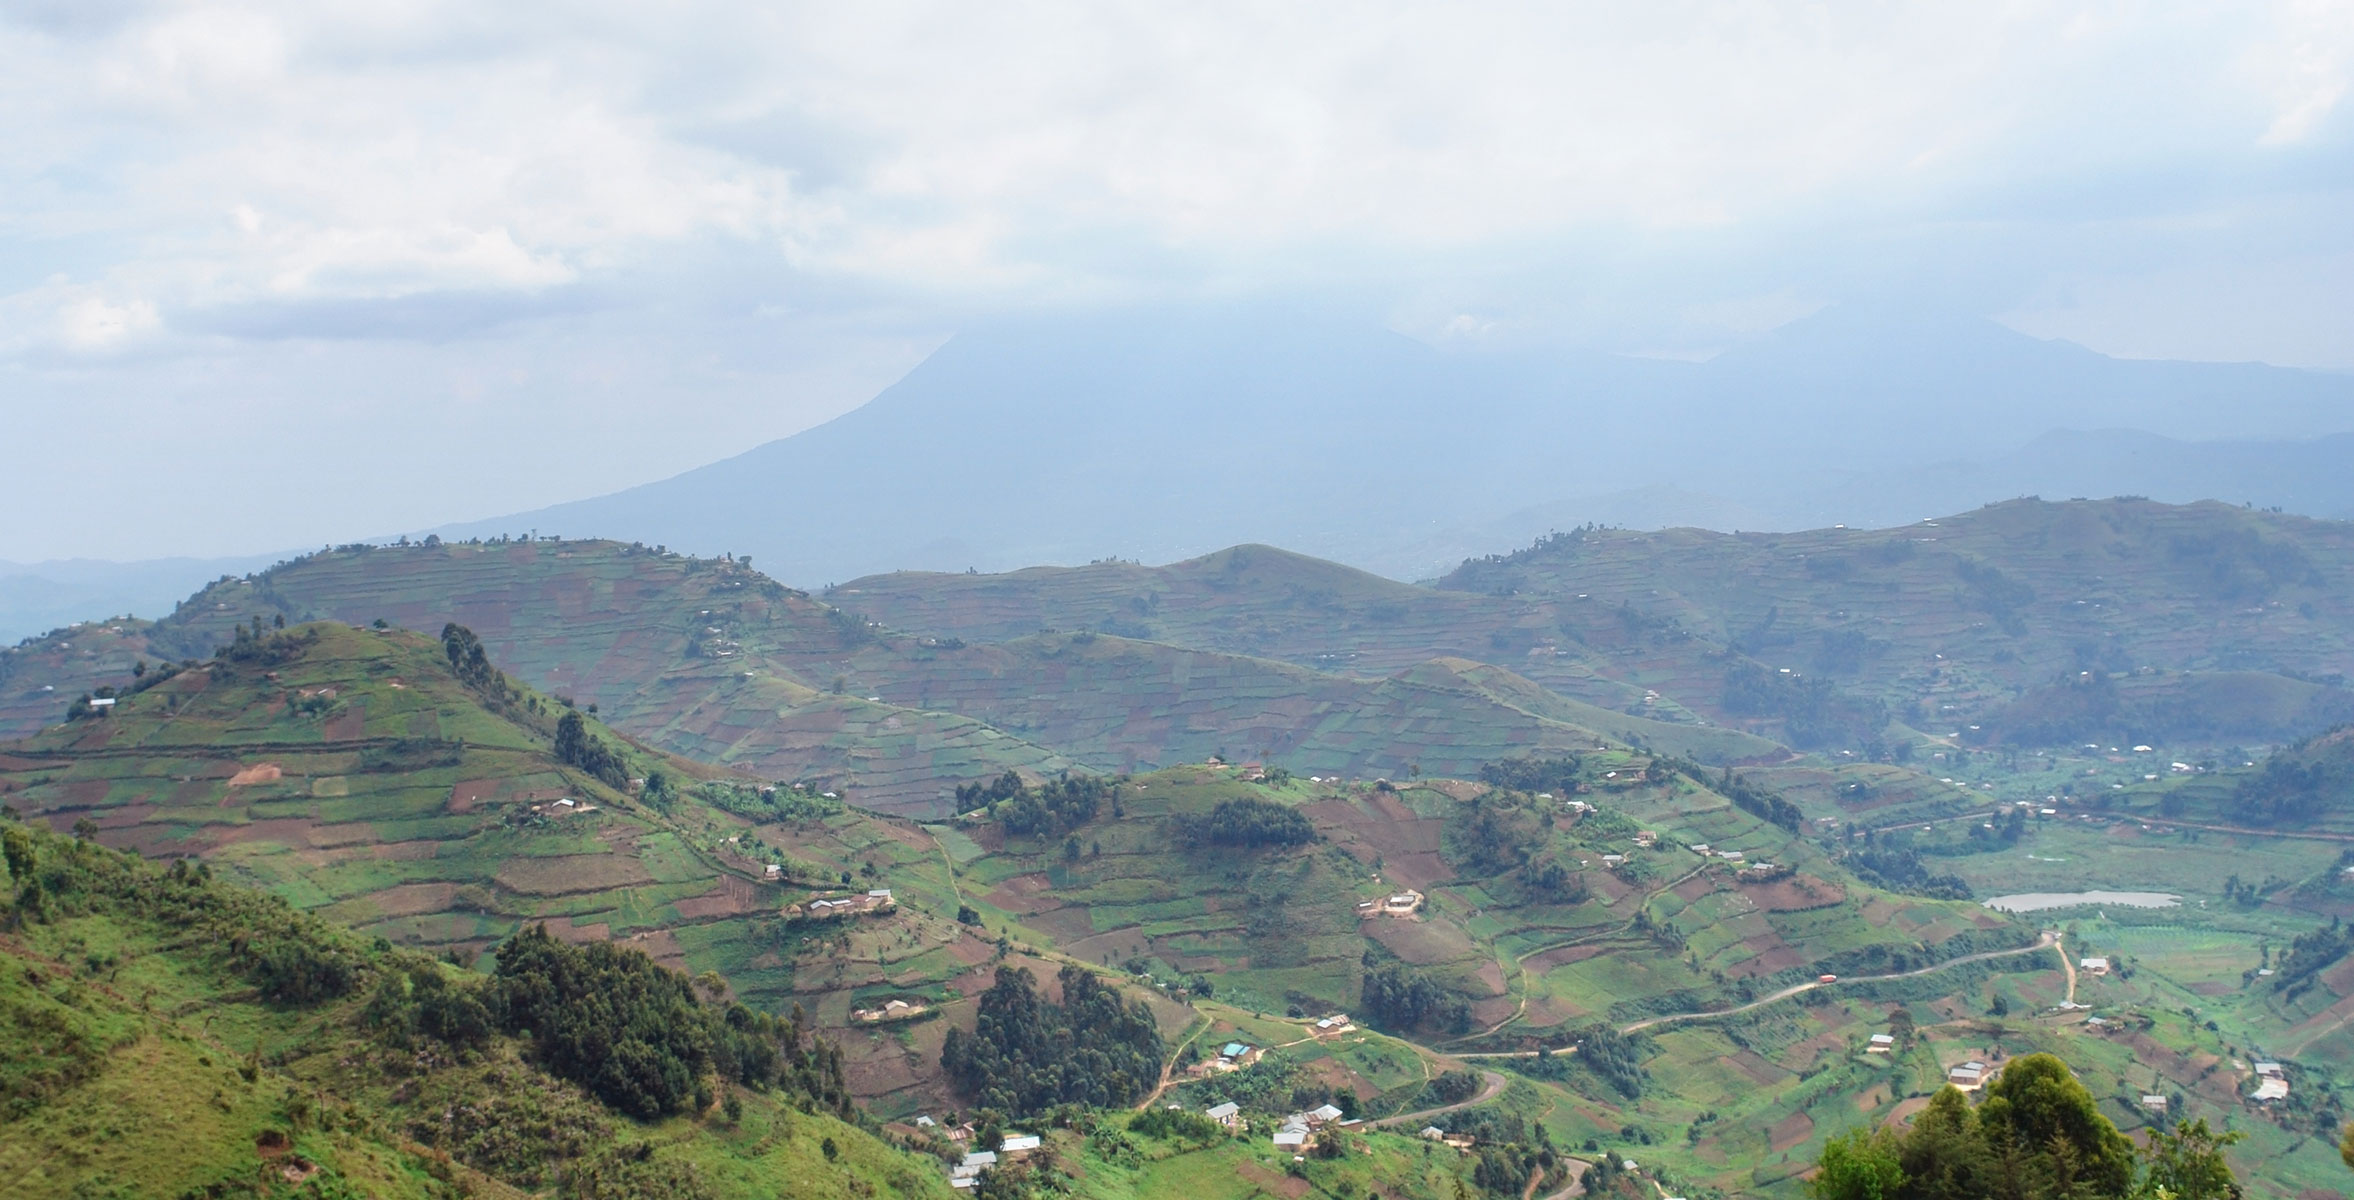 virunga-mountains-in-uganda-m